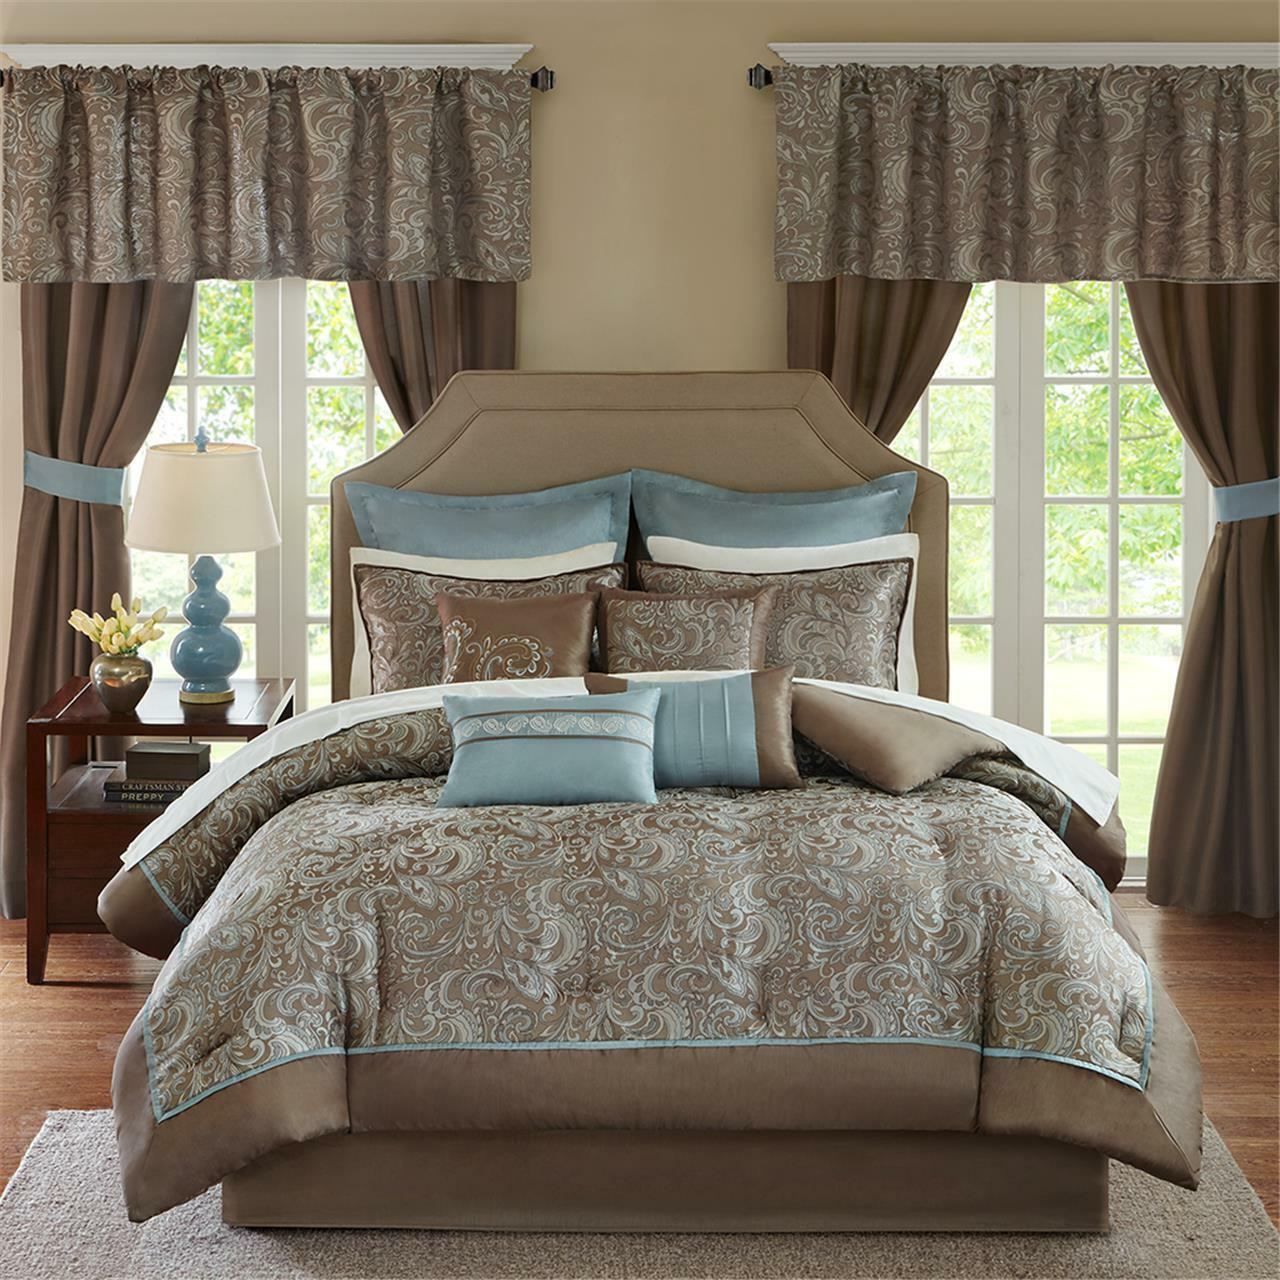 Deluxe Taupe braun Blau Paisley Comforter Curtain 24 pcs Cal King Queen Set New